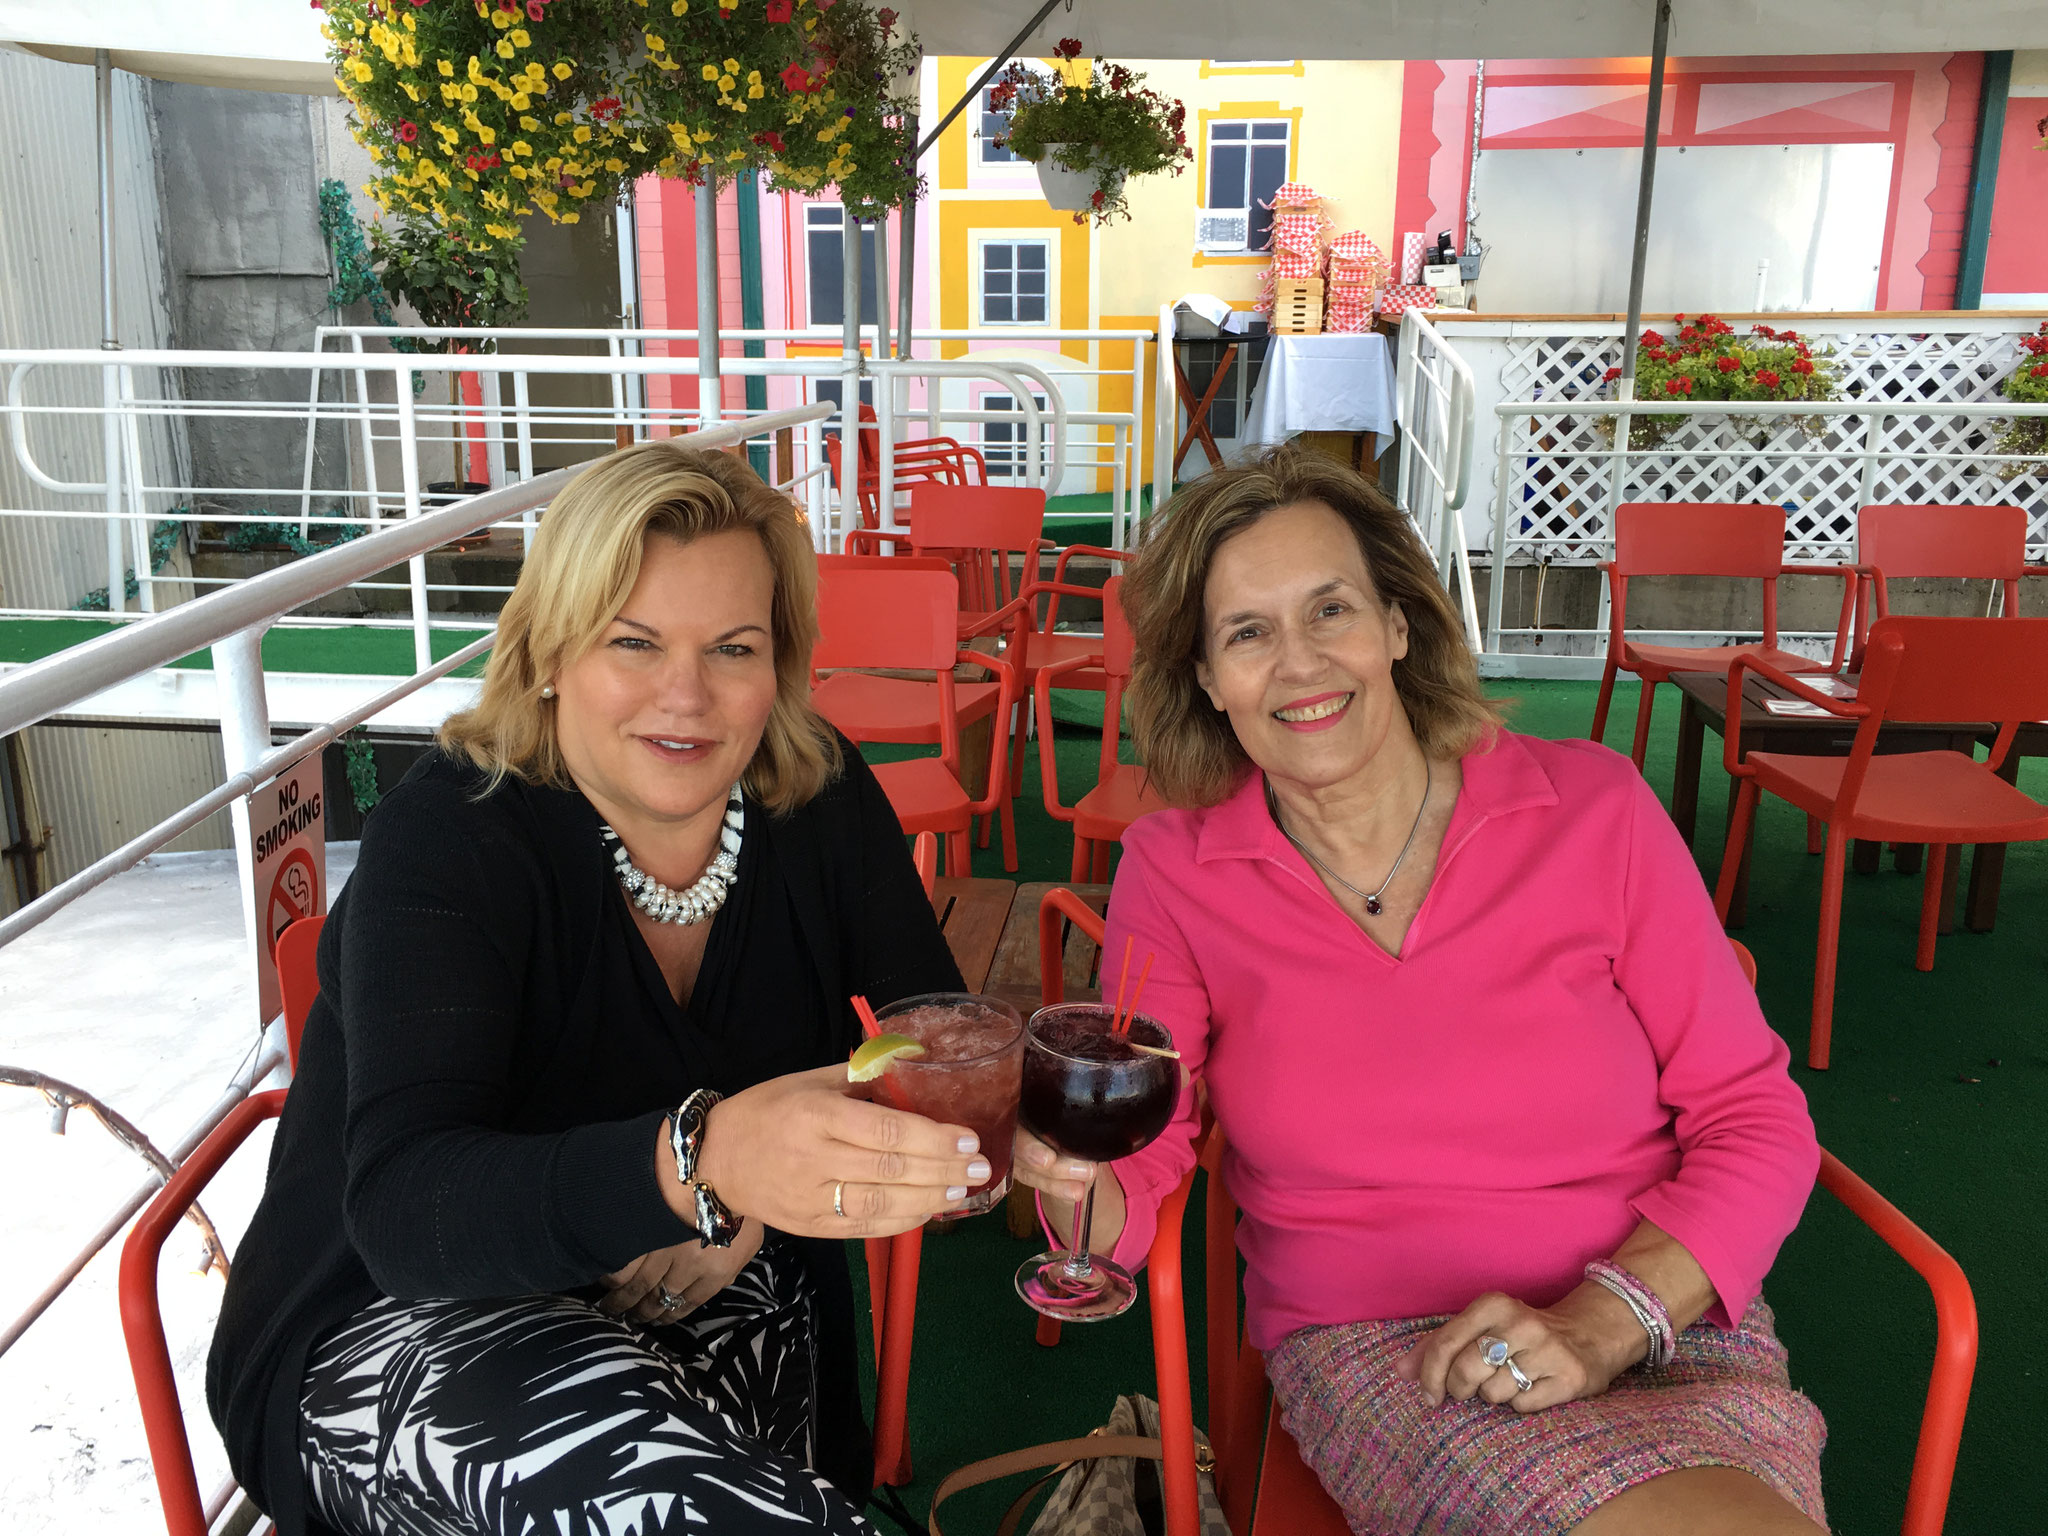 Celeste & Lorraine celebrate at the Water Club, 8-2-16 !!